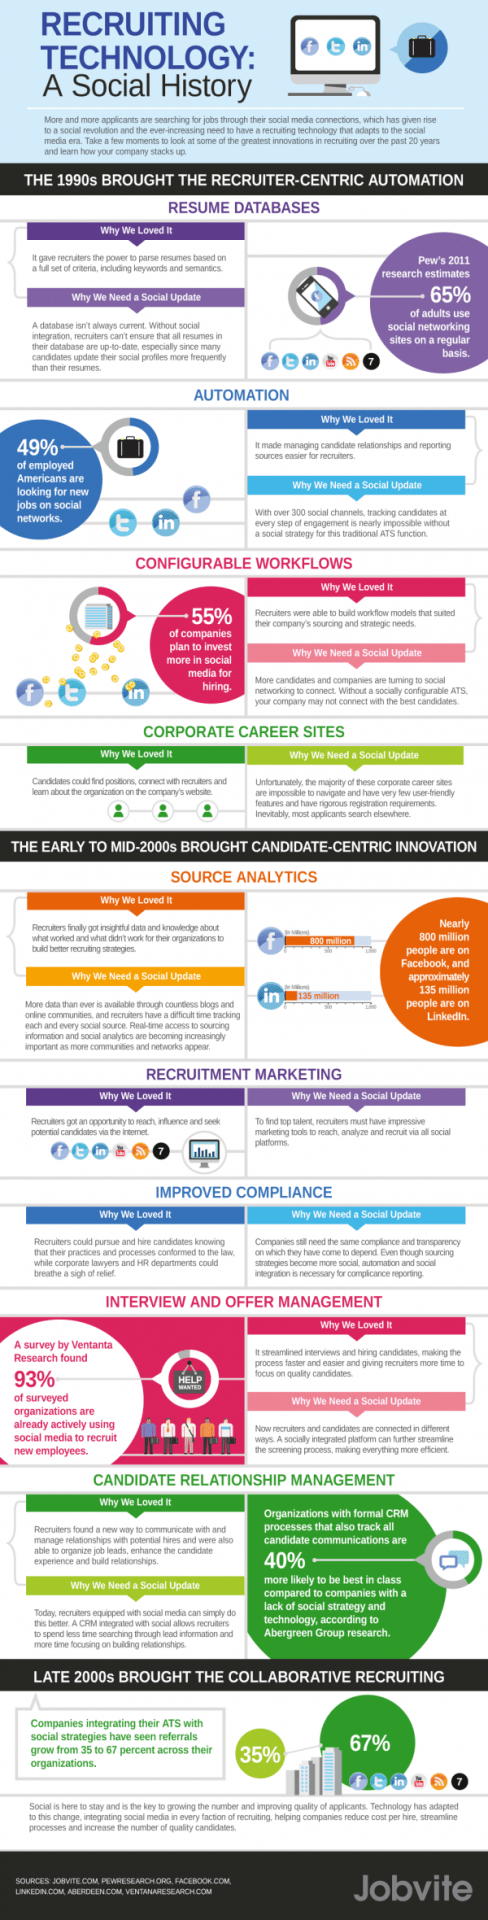 Social Recruiting On The Web - A Historical Infographic